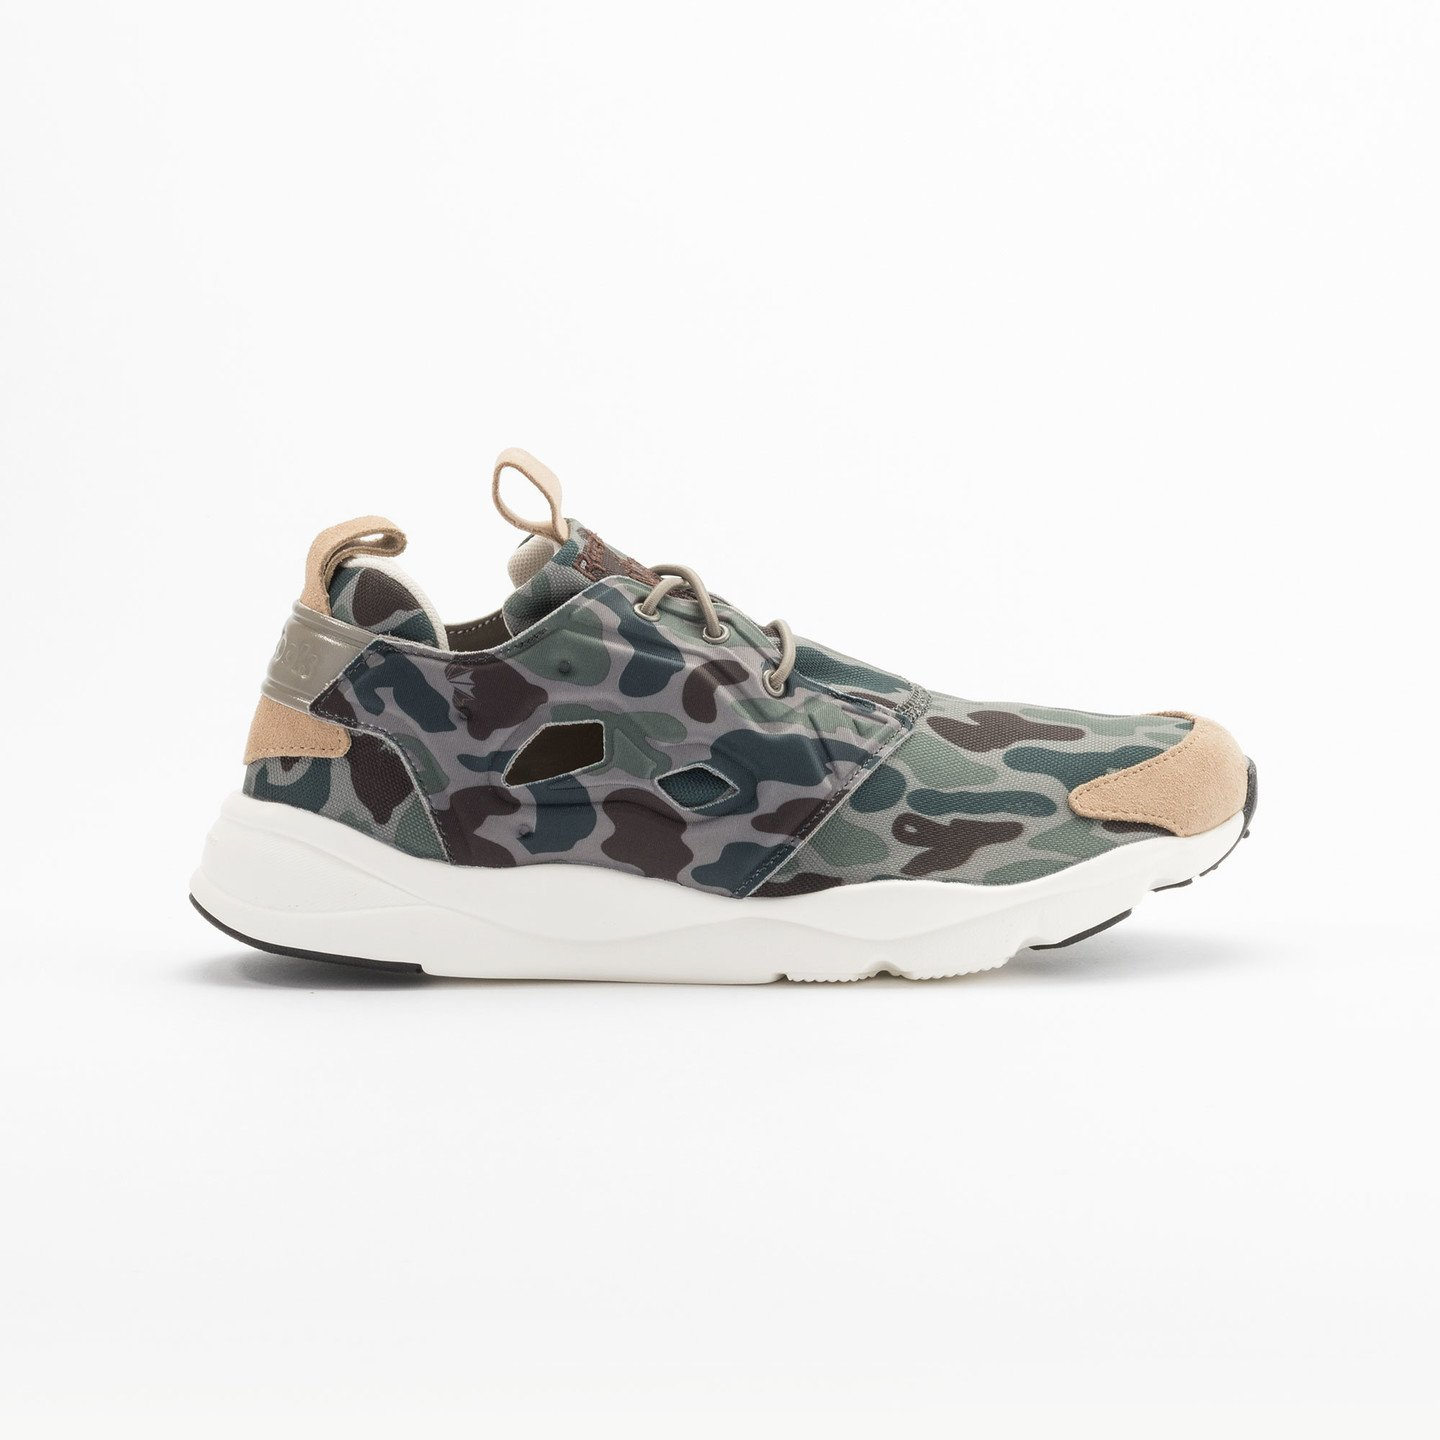 Reebok Furylite Camo Cement / Silvery Green / Sage V67089-44.5